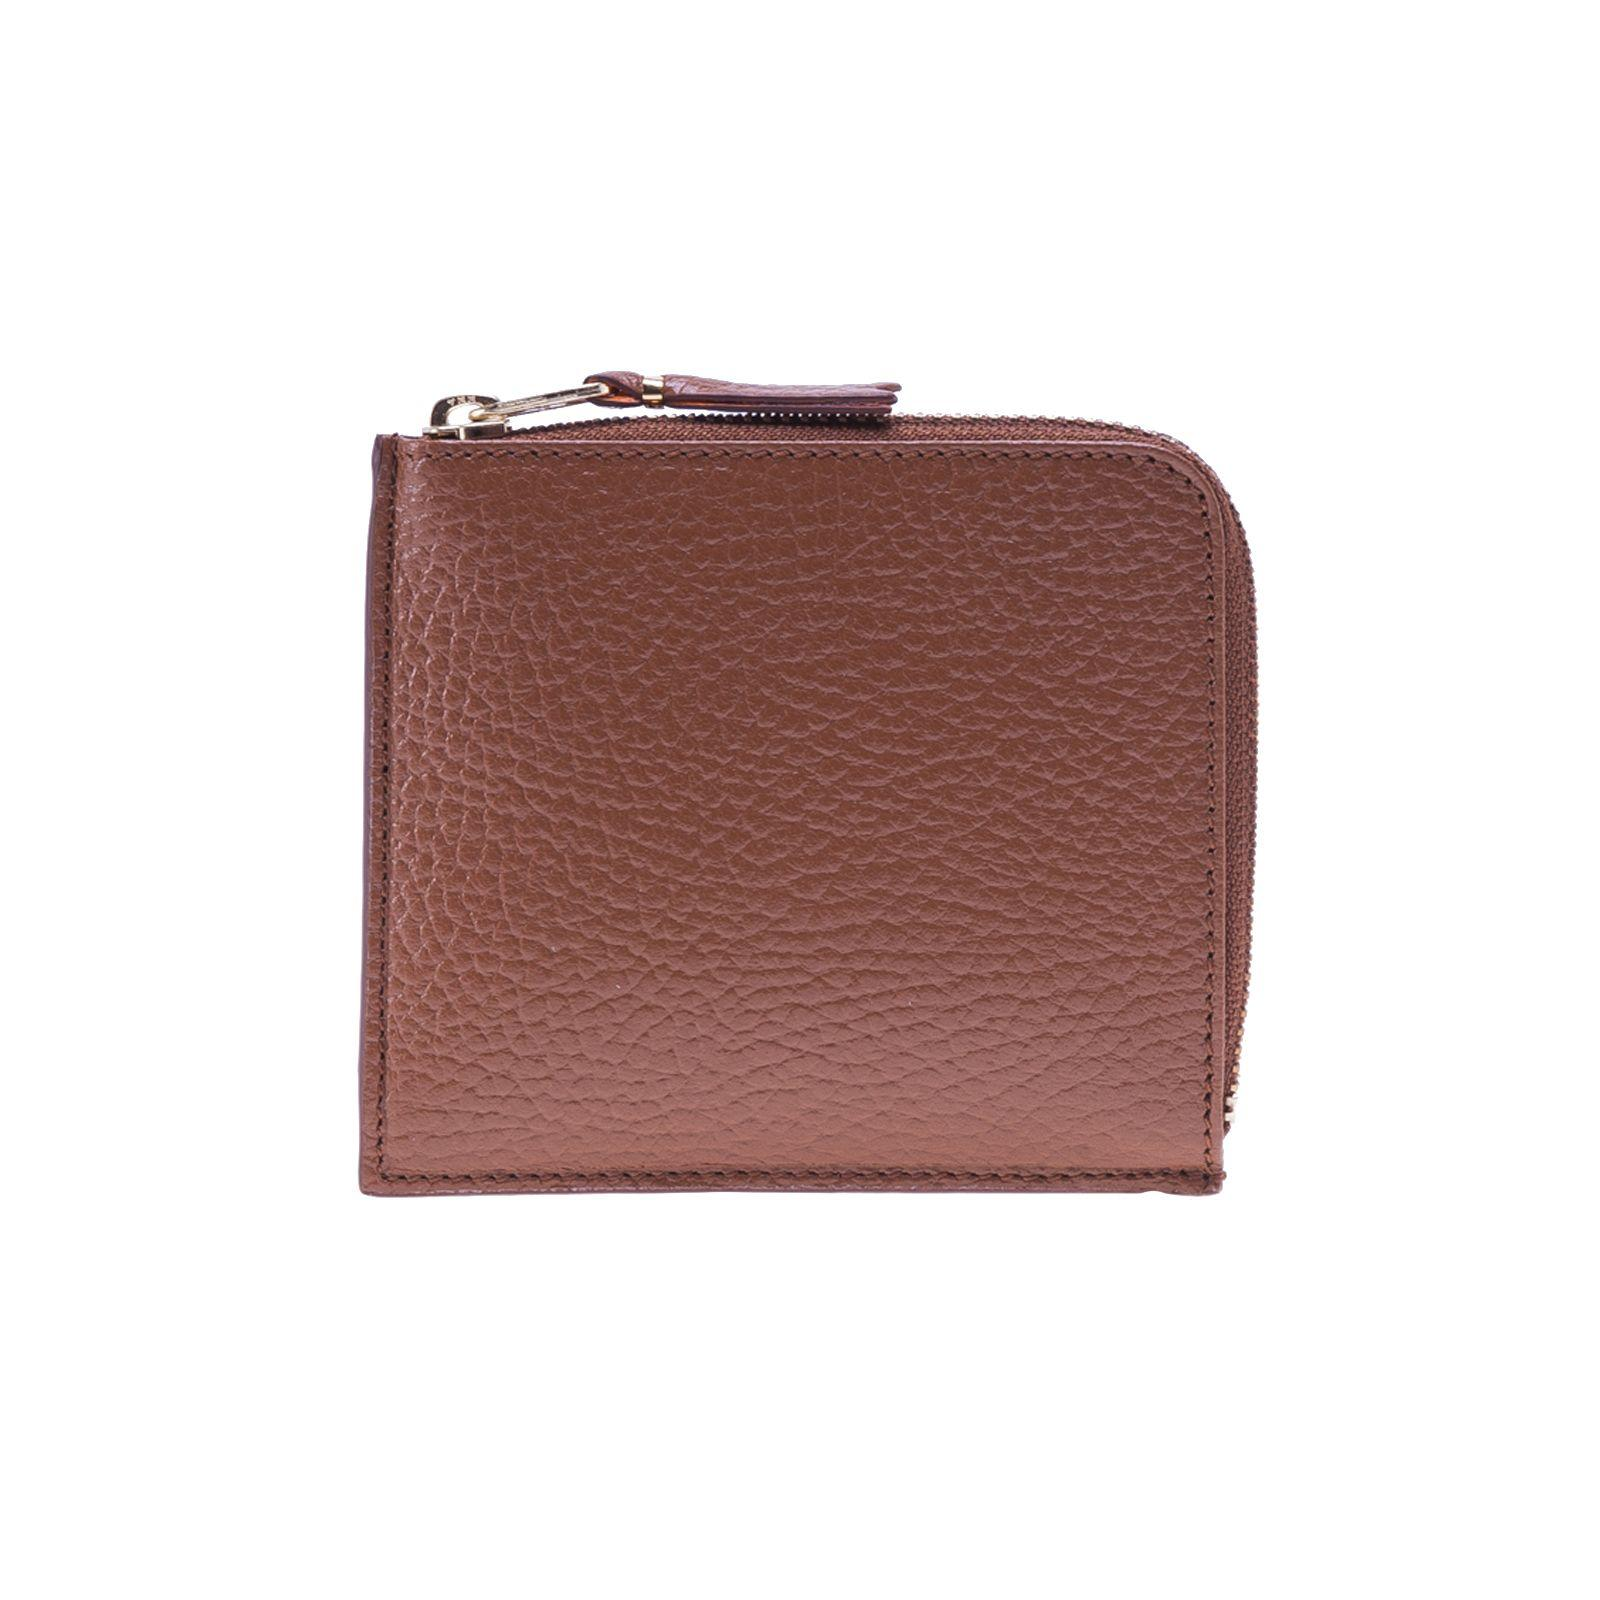 Comme Des GarÇons Wallet Grained Leather Wallet In Orangebrown